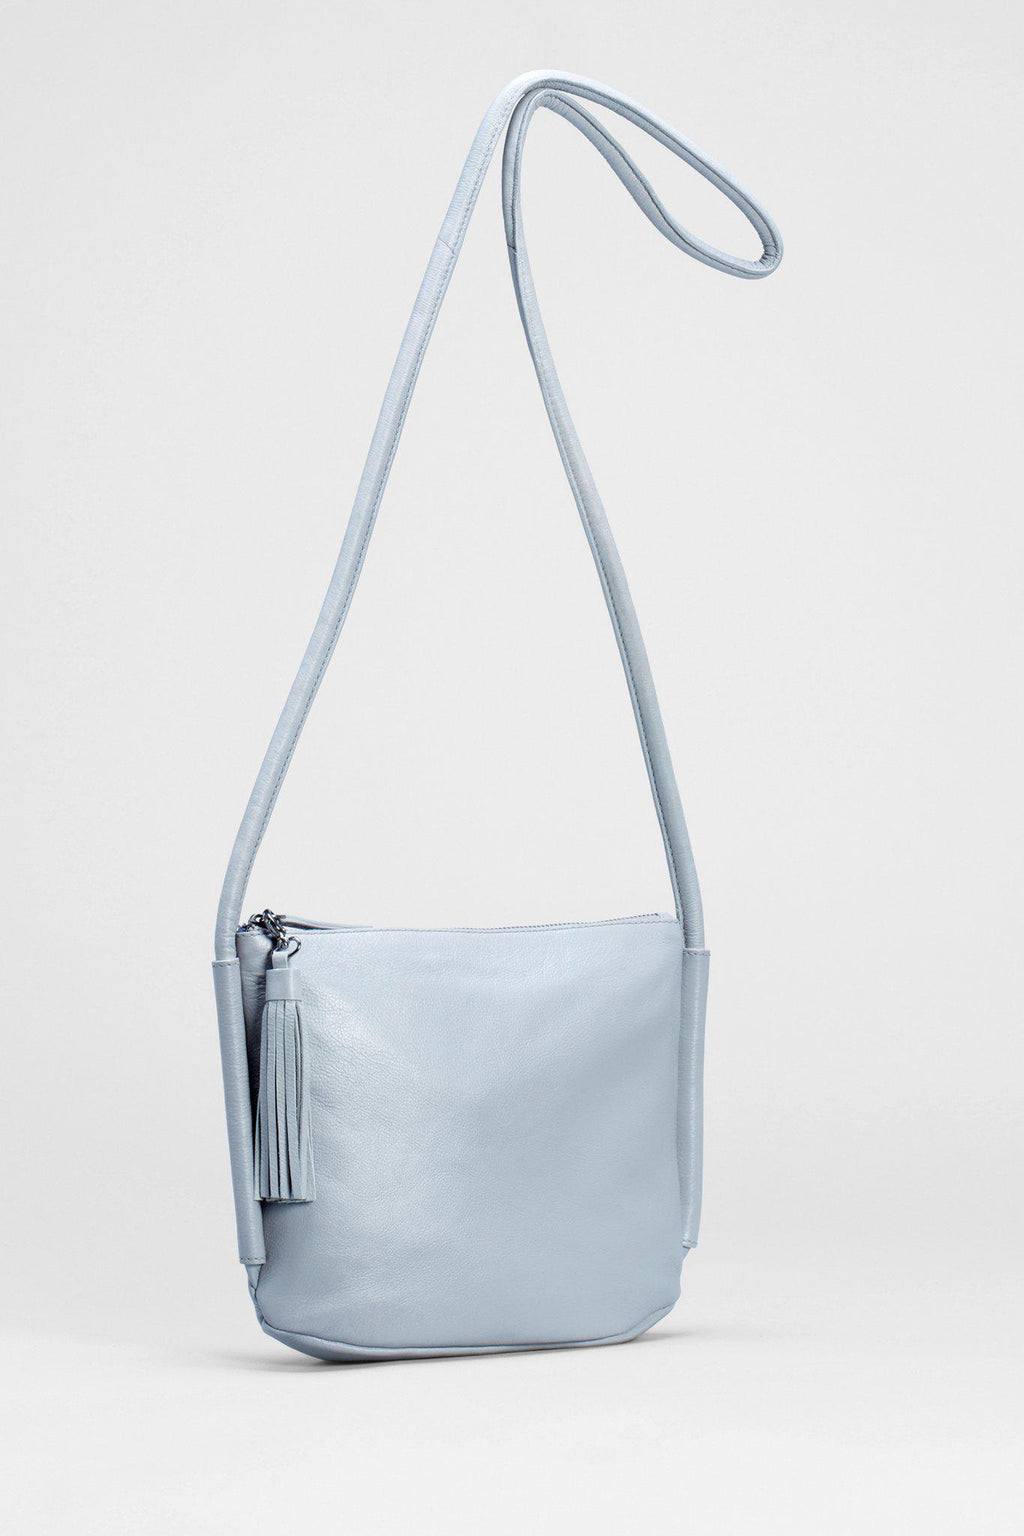 Buy Forbi Small Bag from ELK The Label at paya boutique